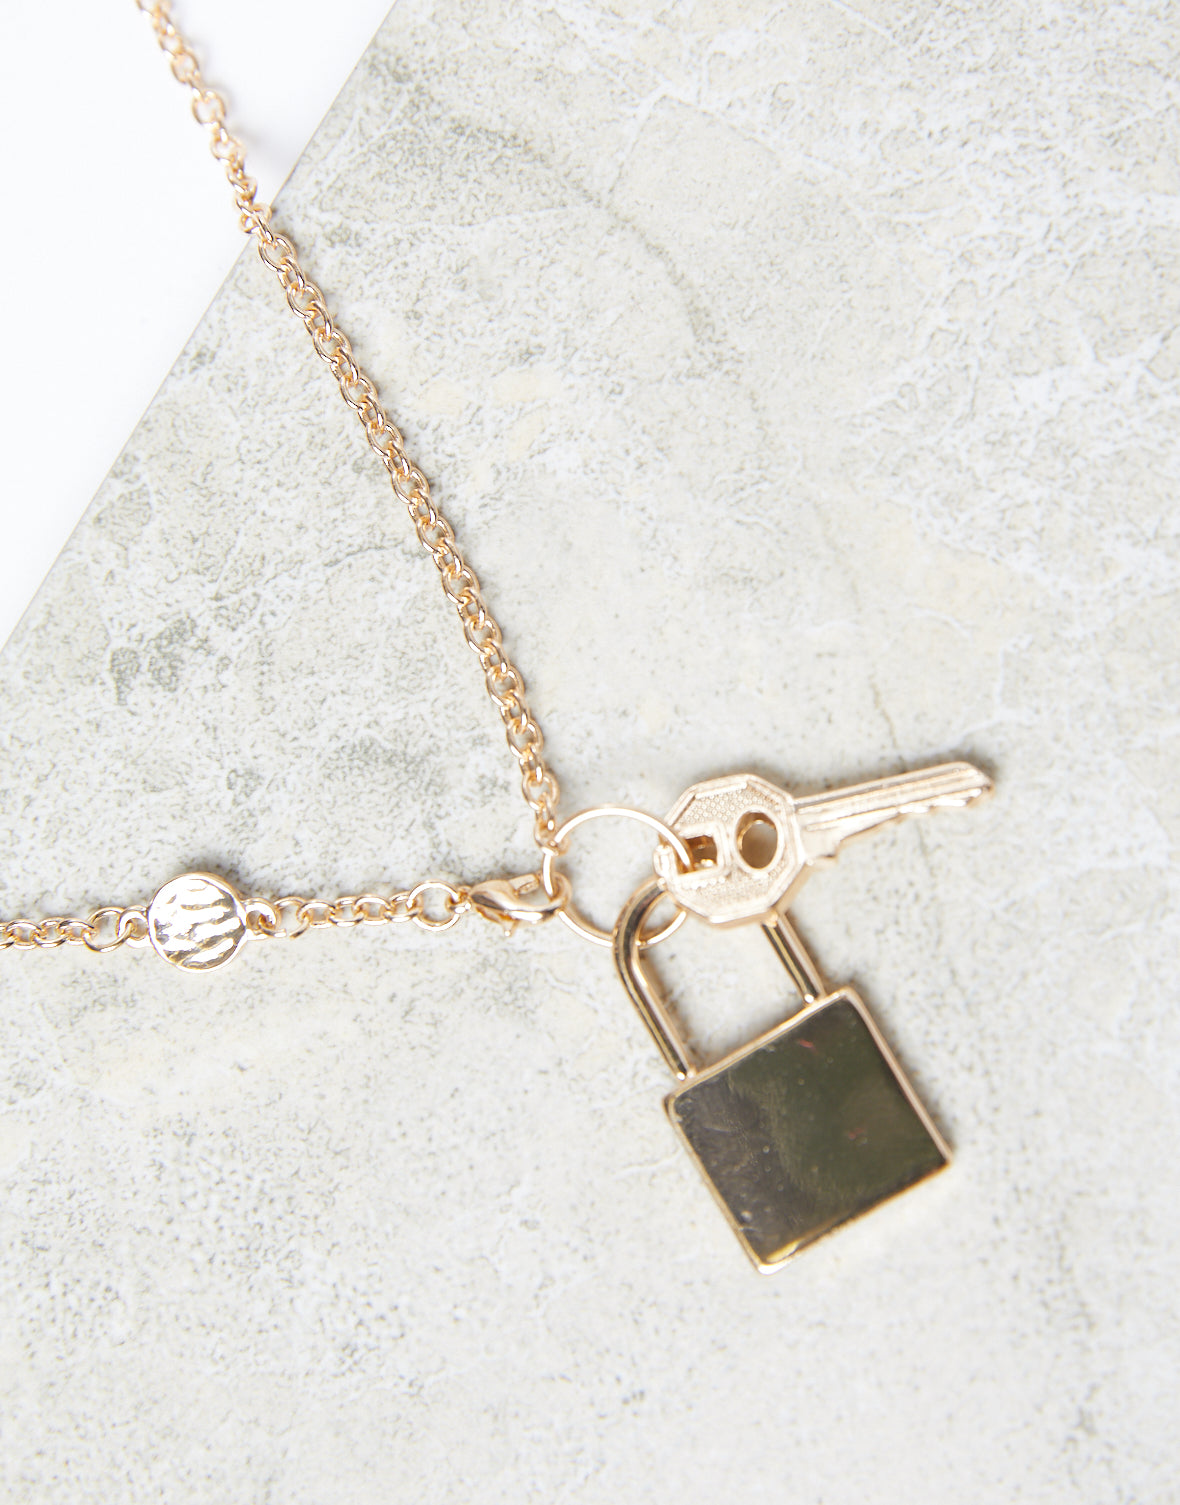 Lock It Up Chain Necklace